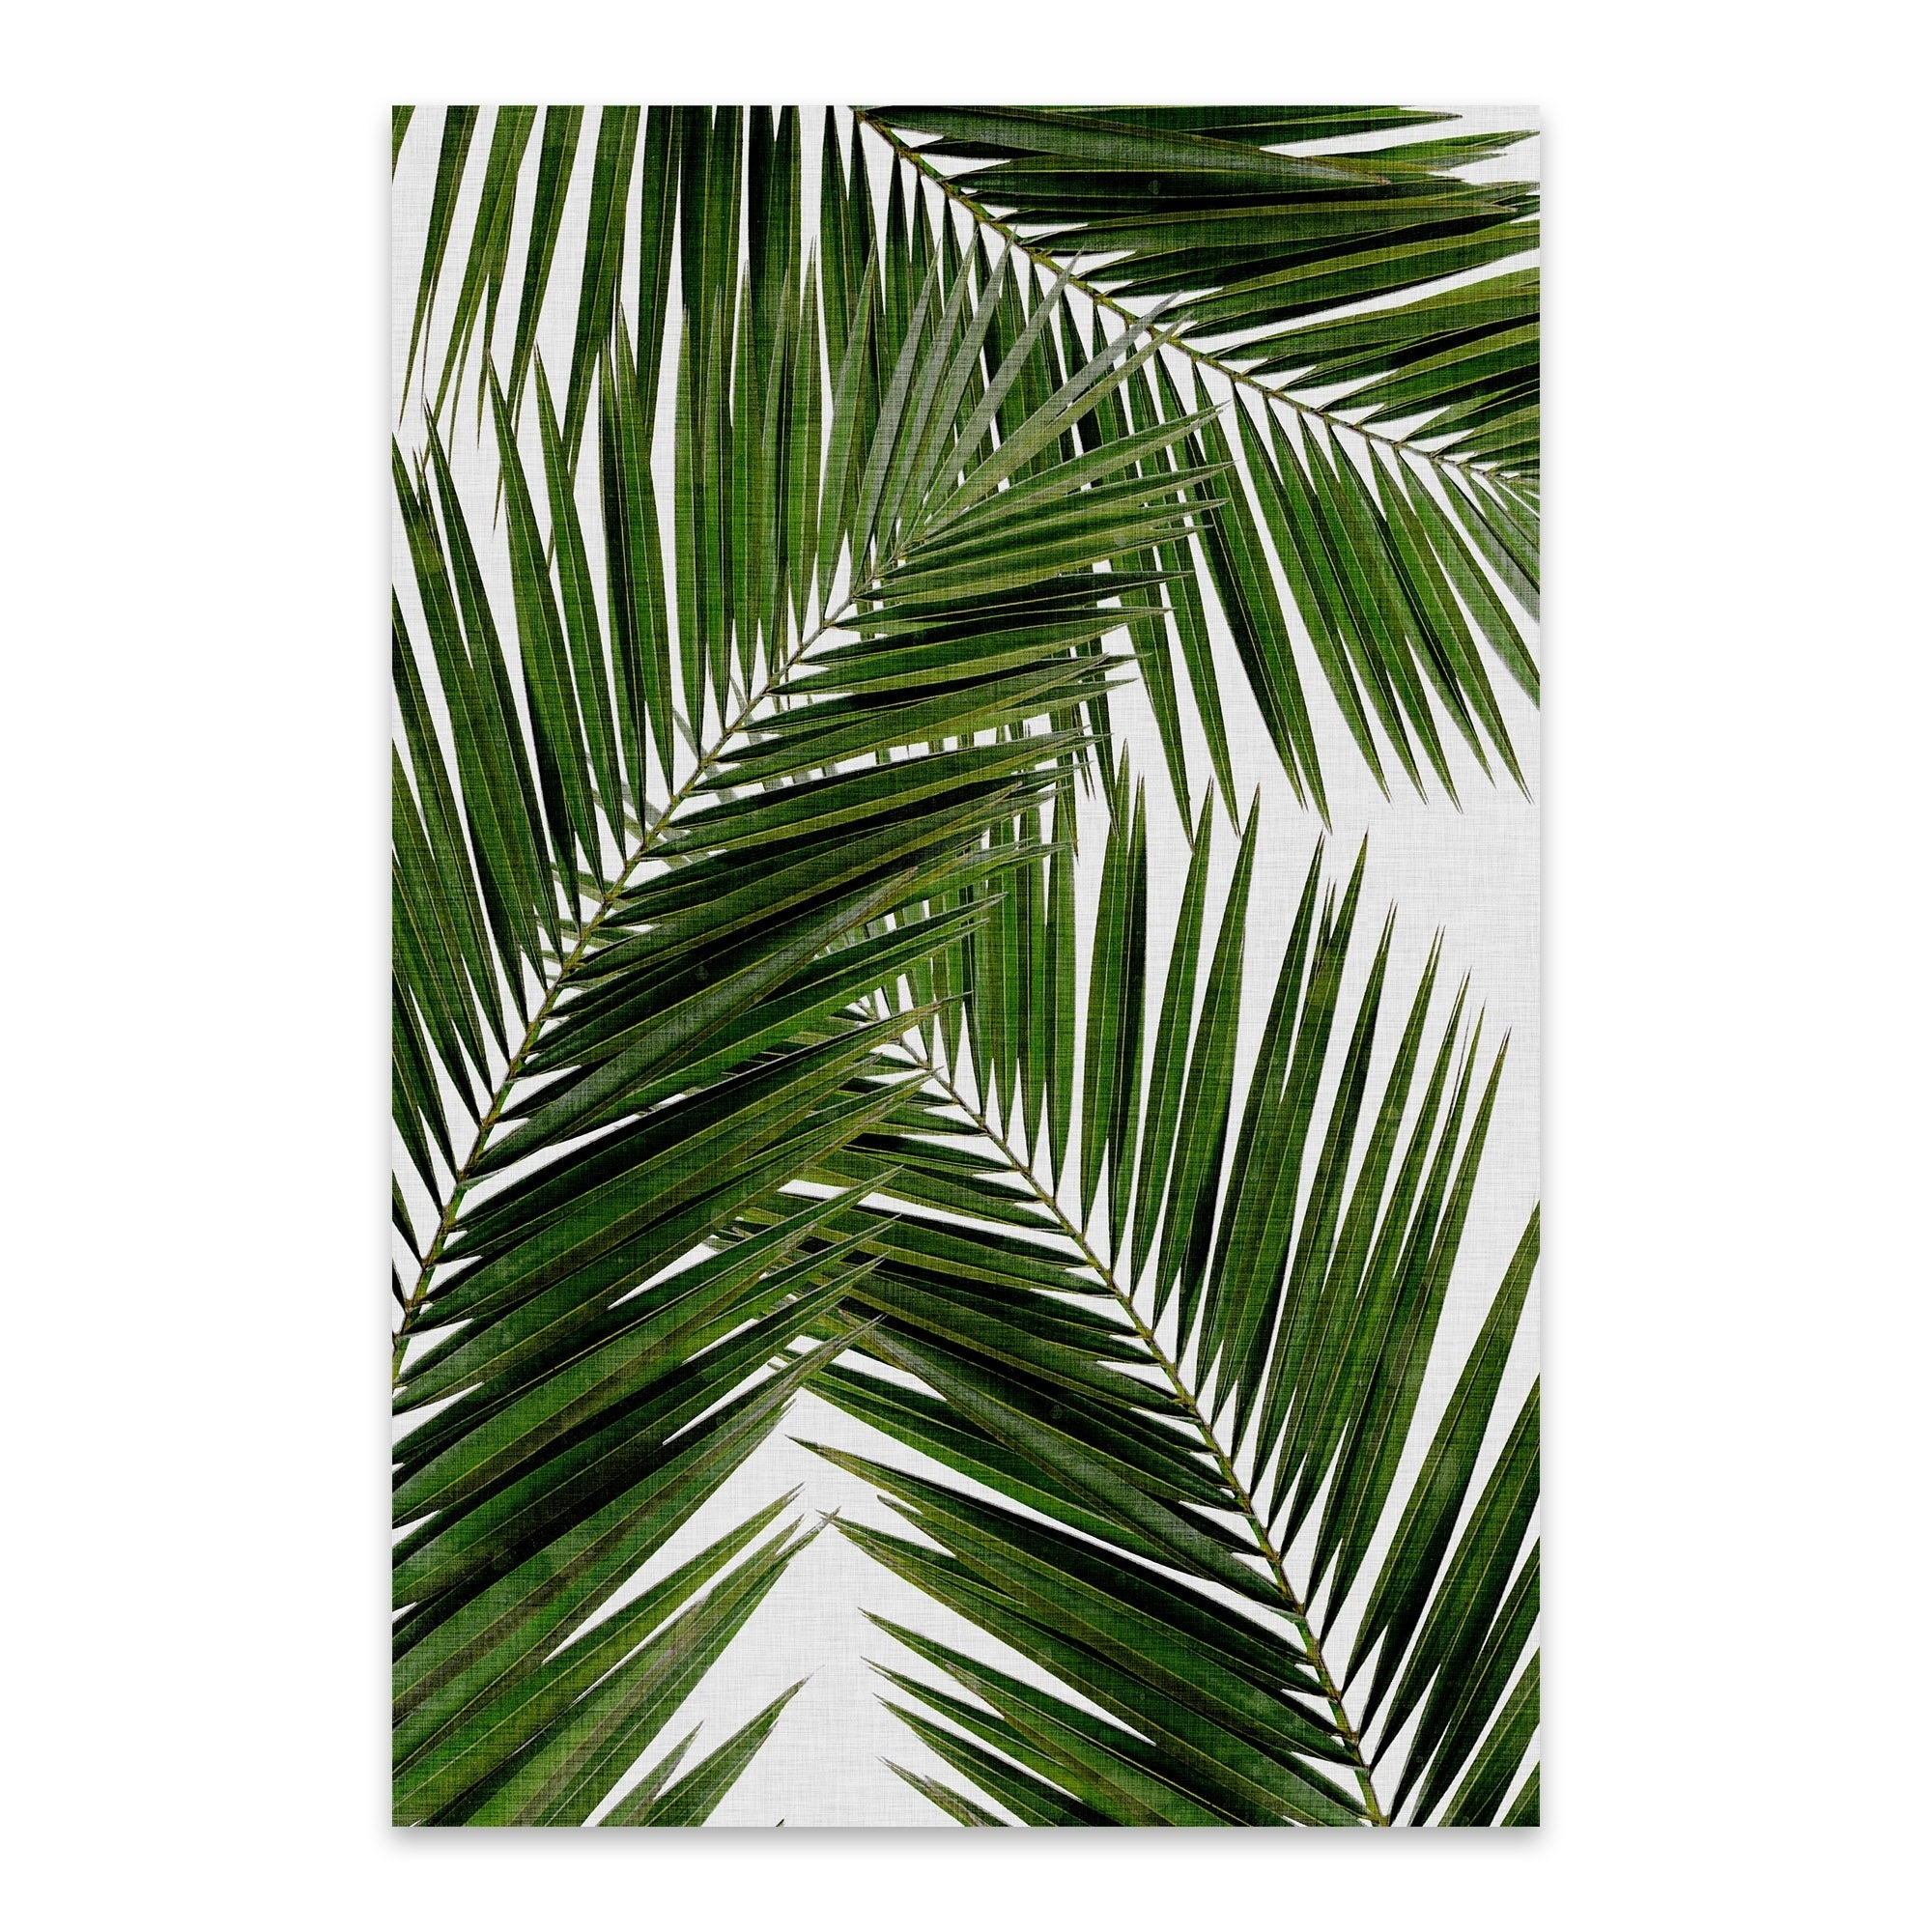 Shop Noir Gallery Orara Studio Palm Leaf Iii Beach Coastal Palm Tree Leaf Metal Wall Art Print Overstock 27559327